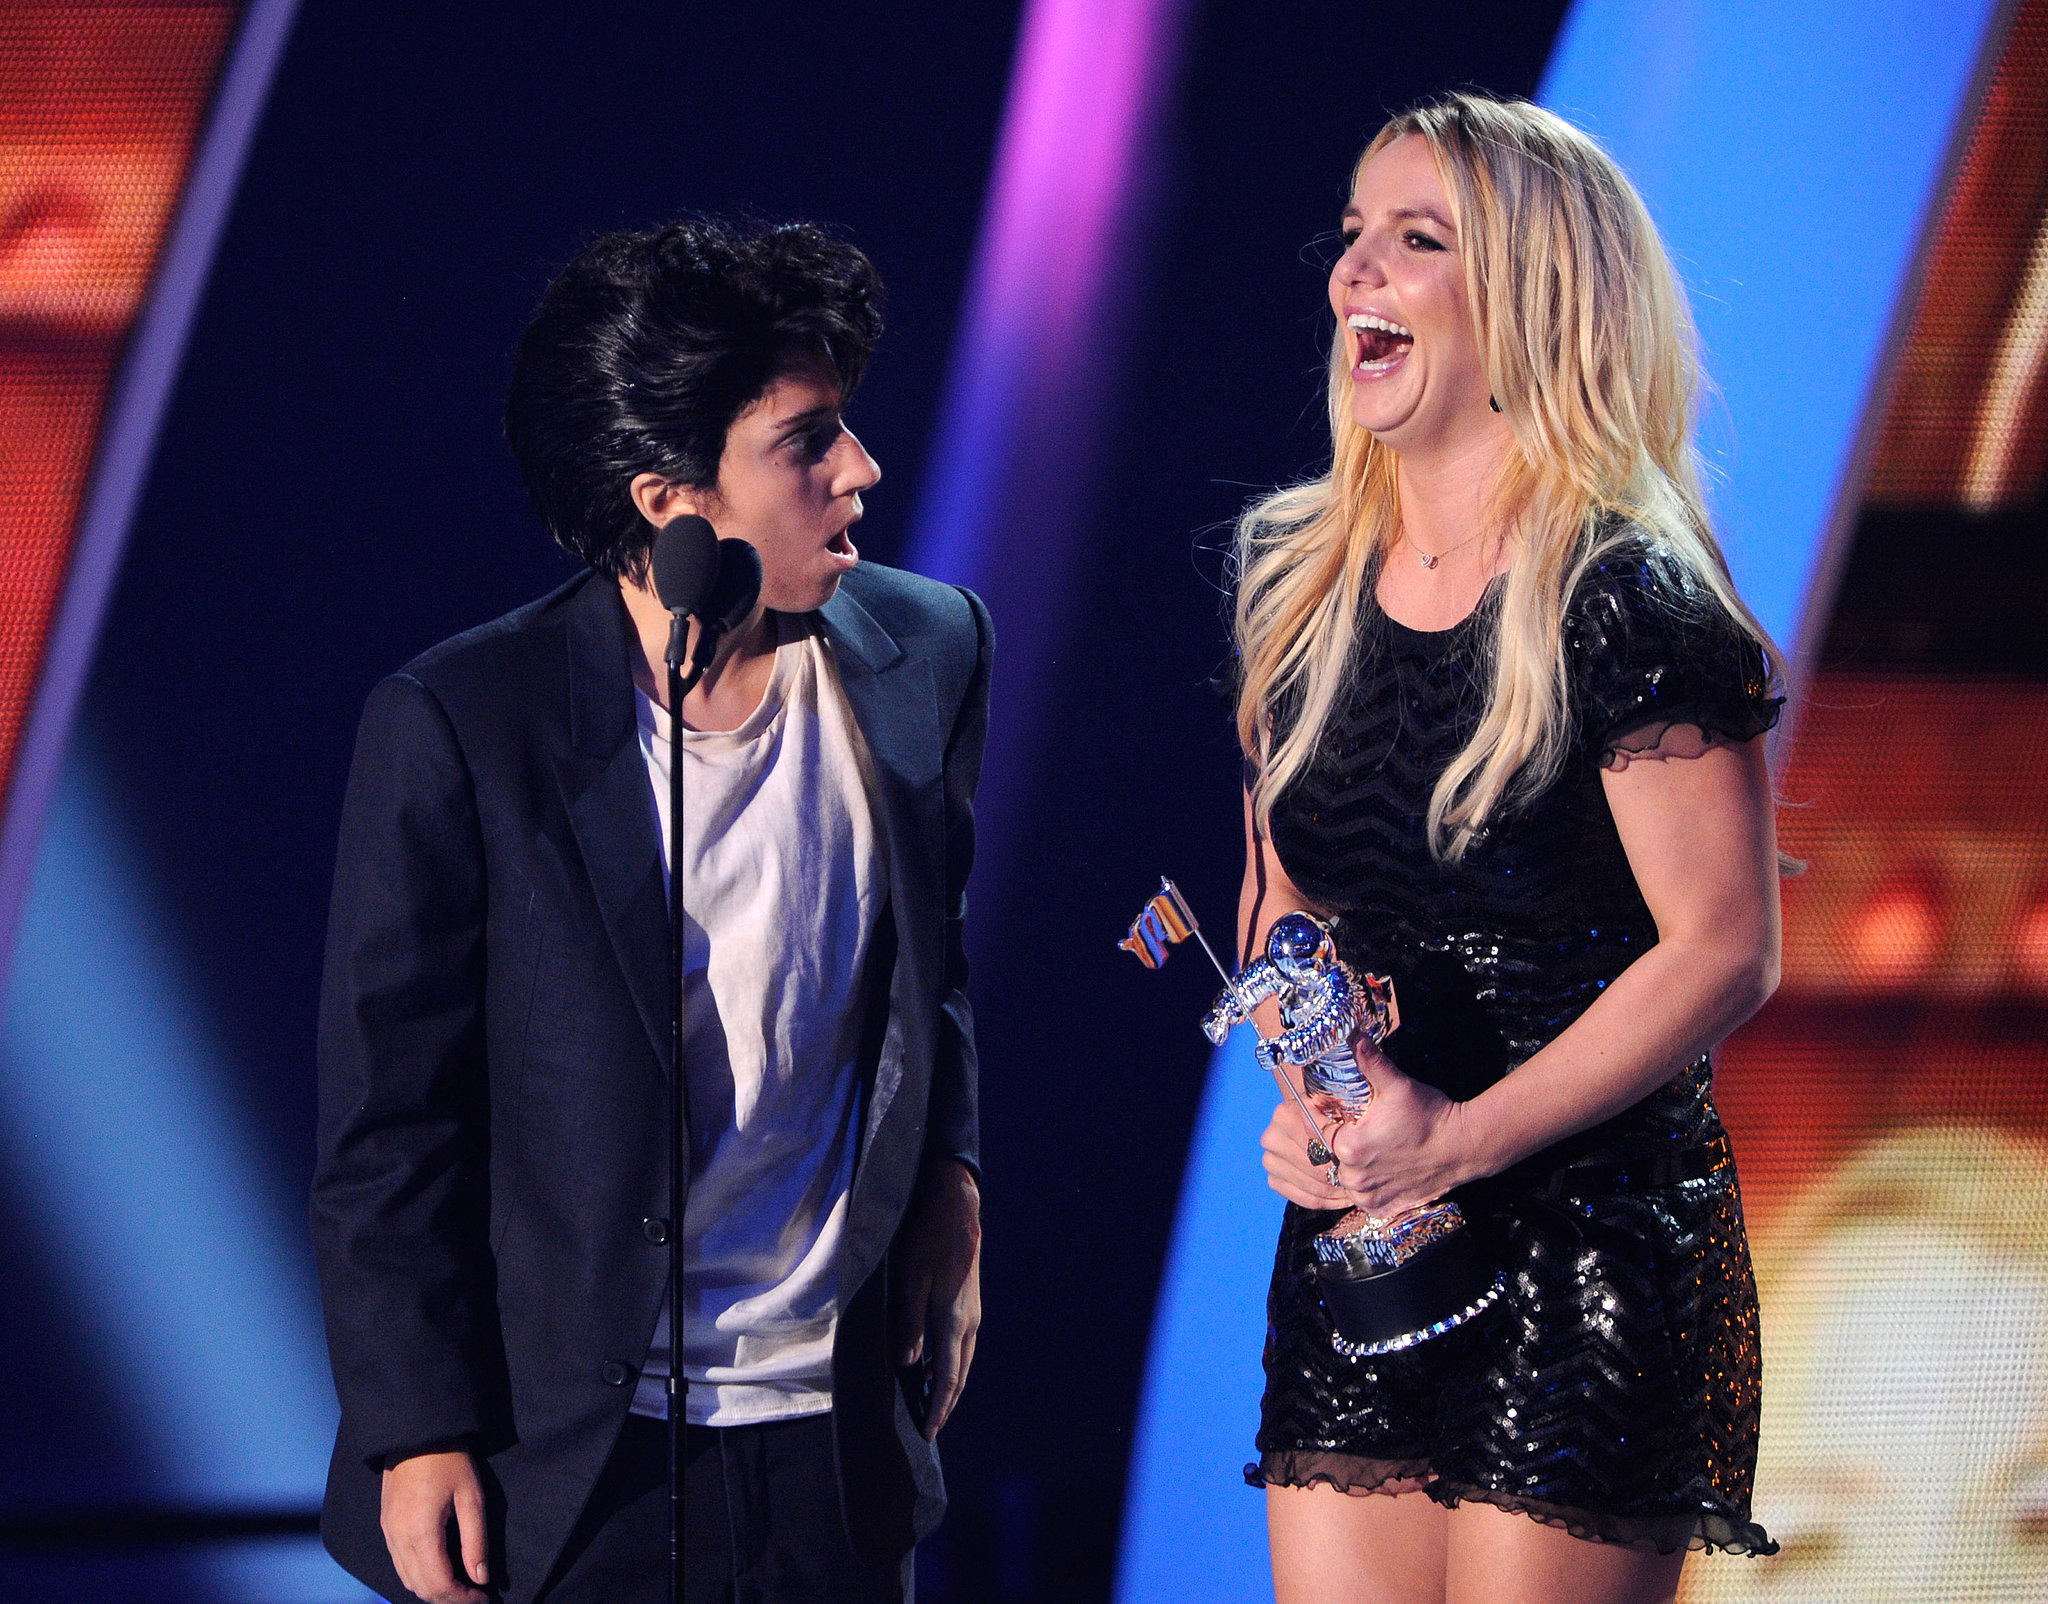 Lady Gaga, dressed as her alter ego, presented Britney Spears with a Moonman at the 2011 show.